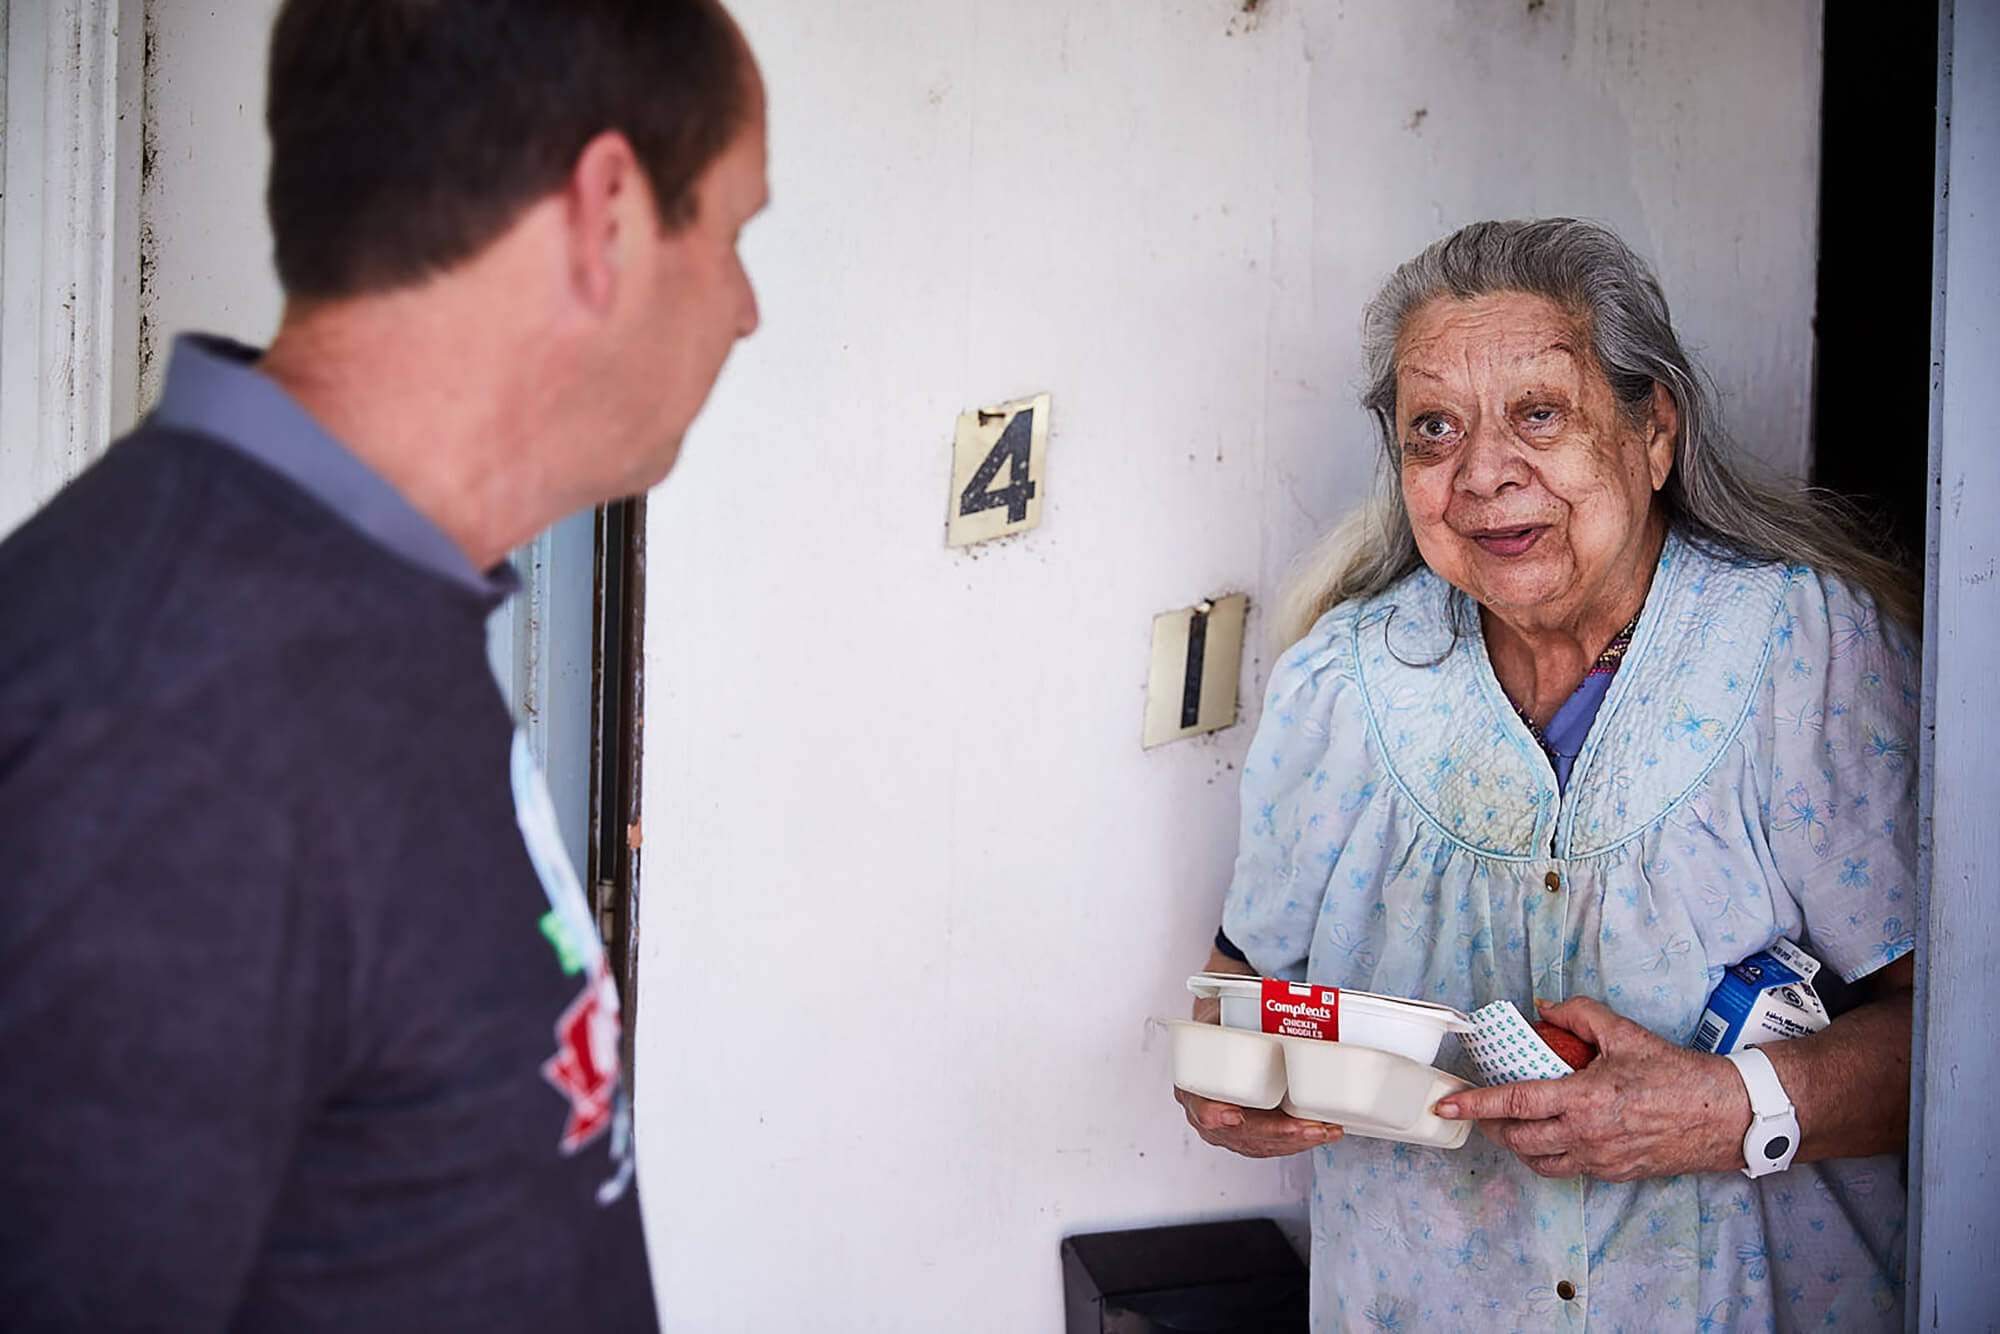 Compleats/Meals on Wheels San Antonio